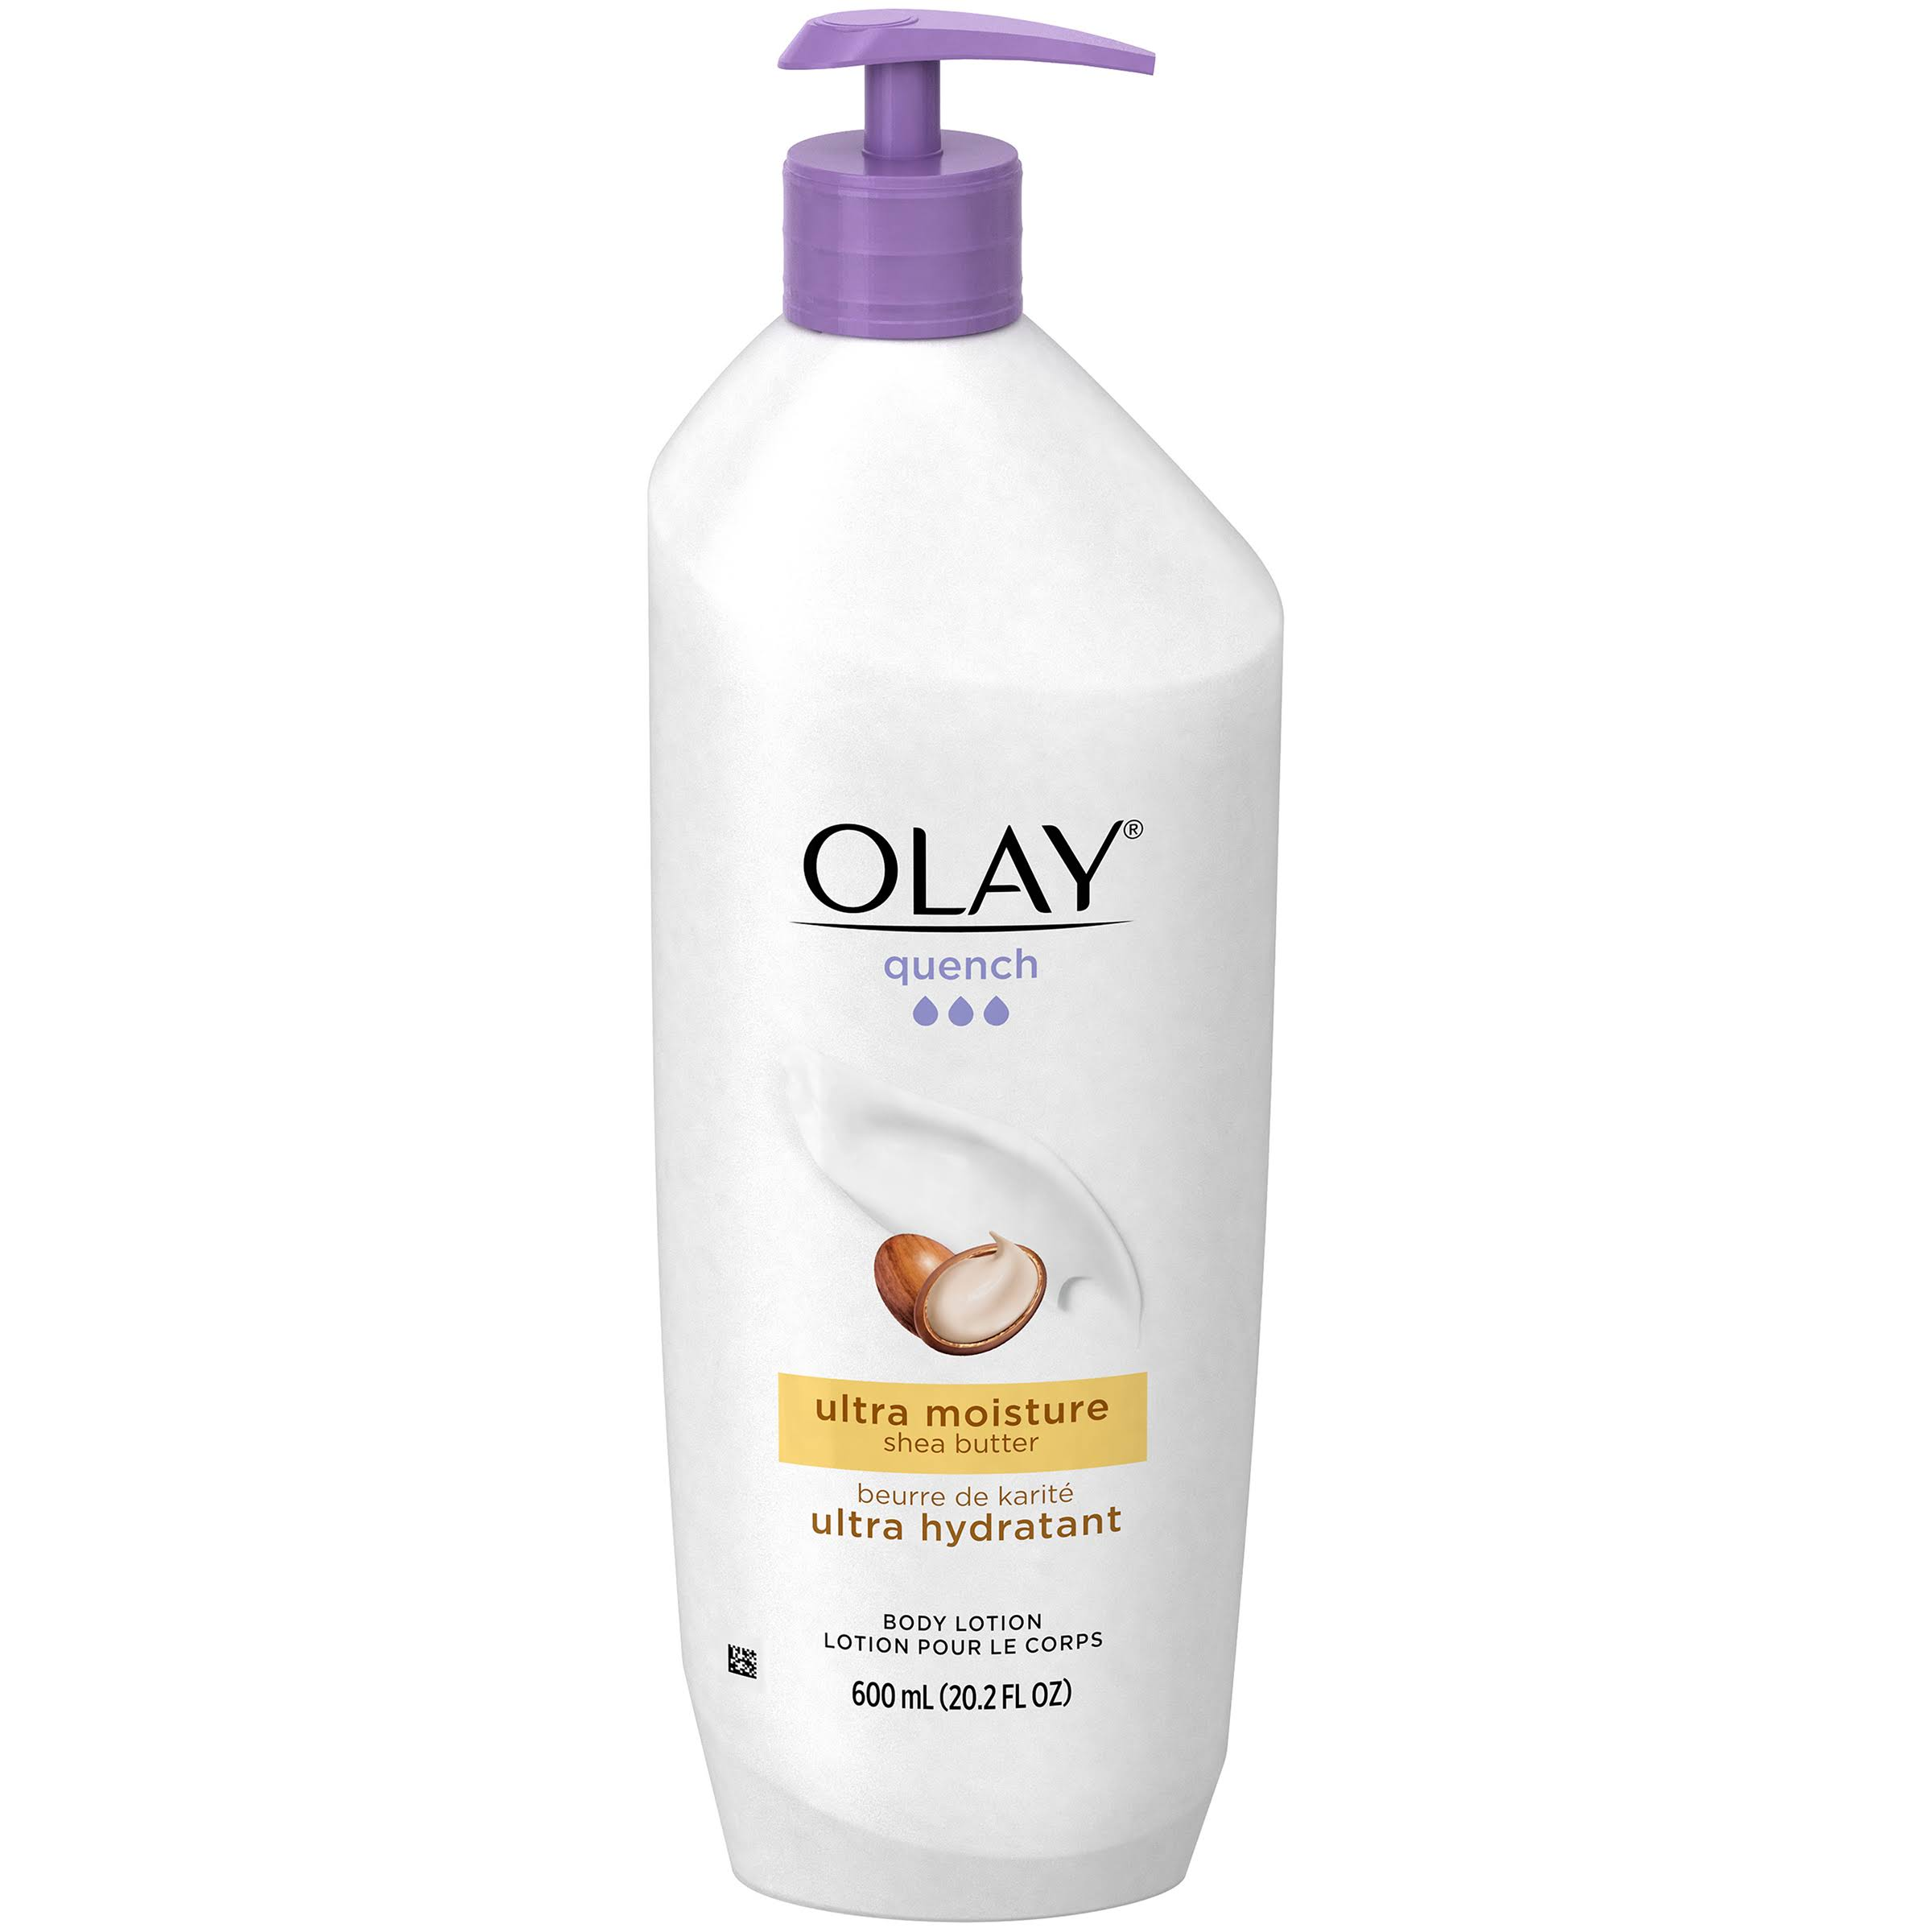 Olay Ultra Moisture Quench Body Lotion - 20.2oz